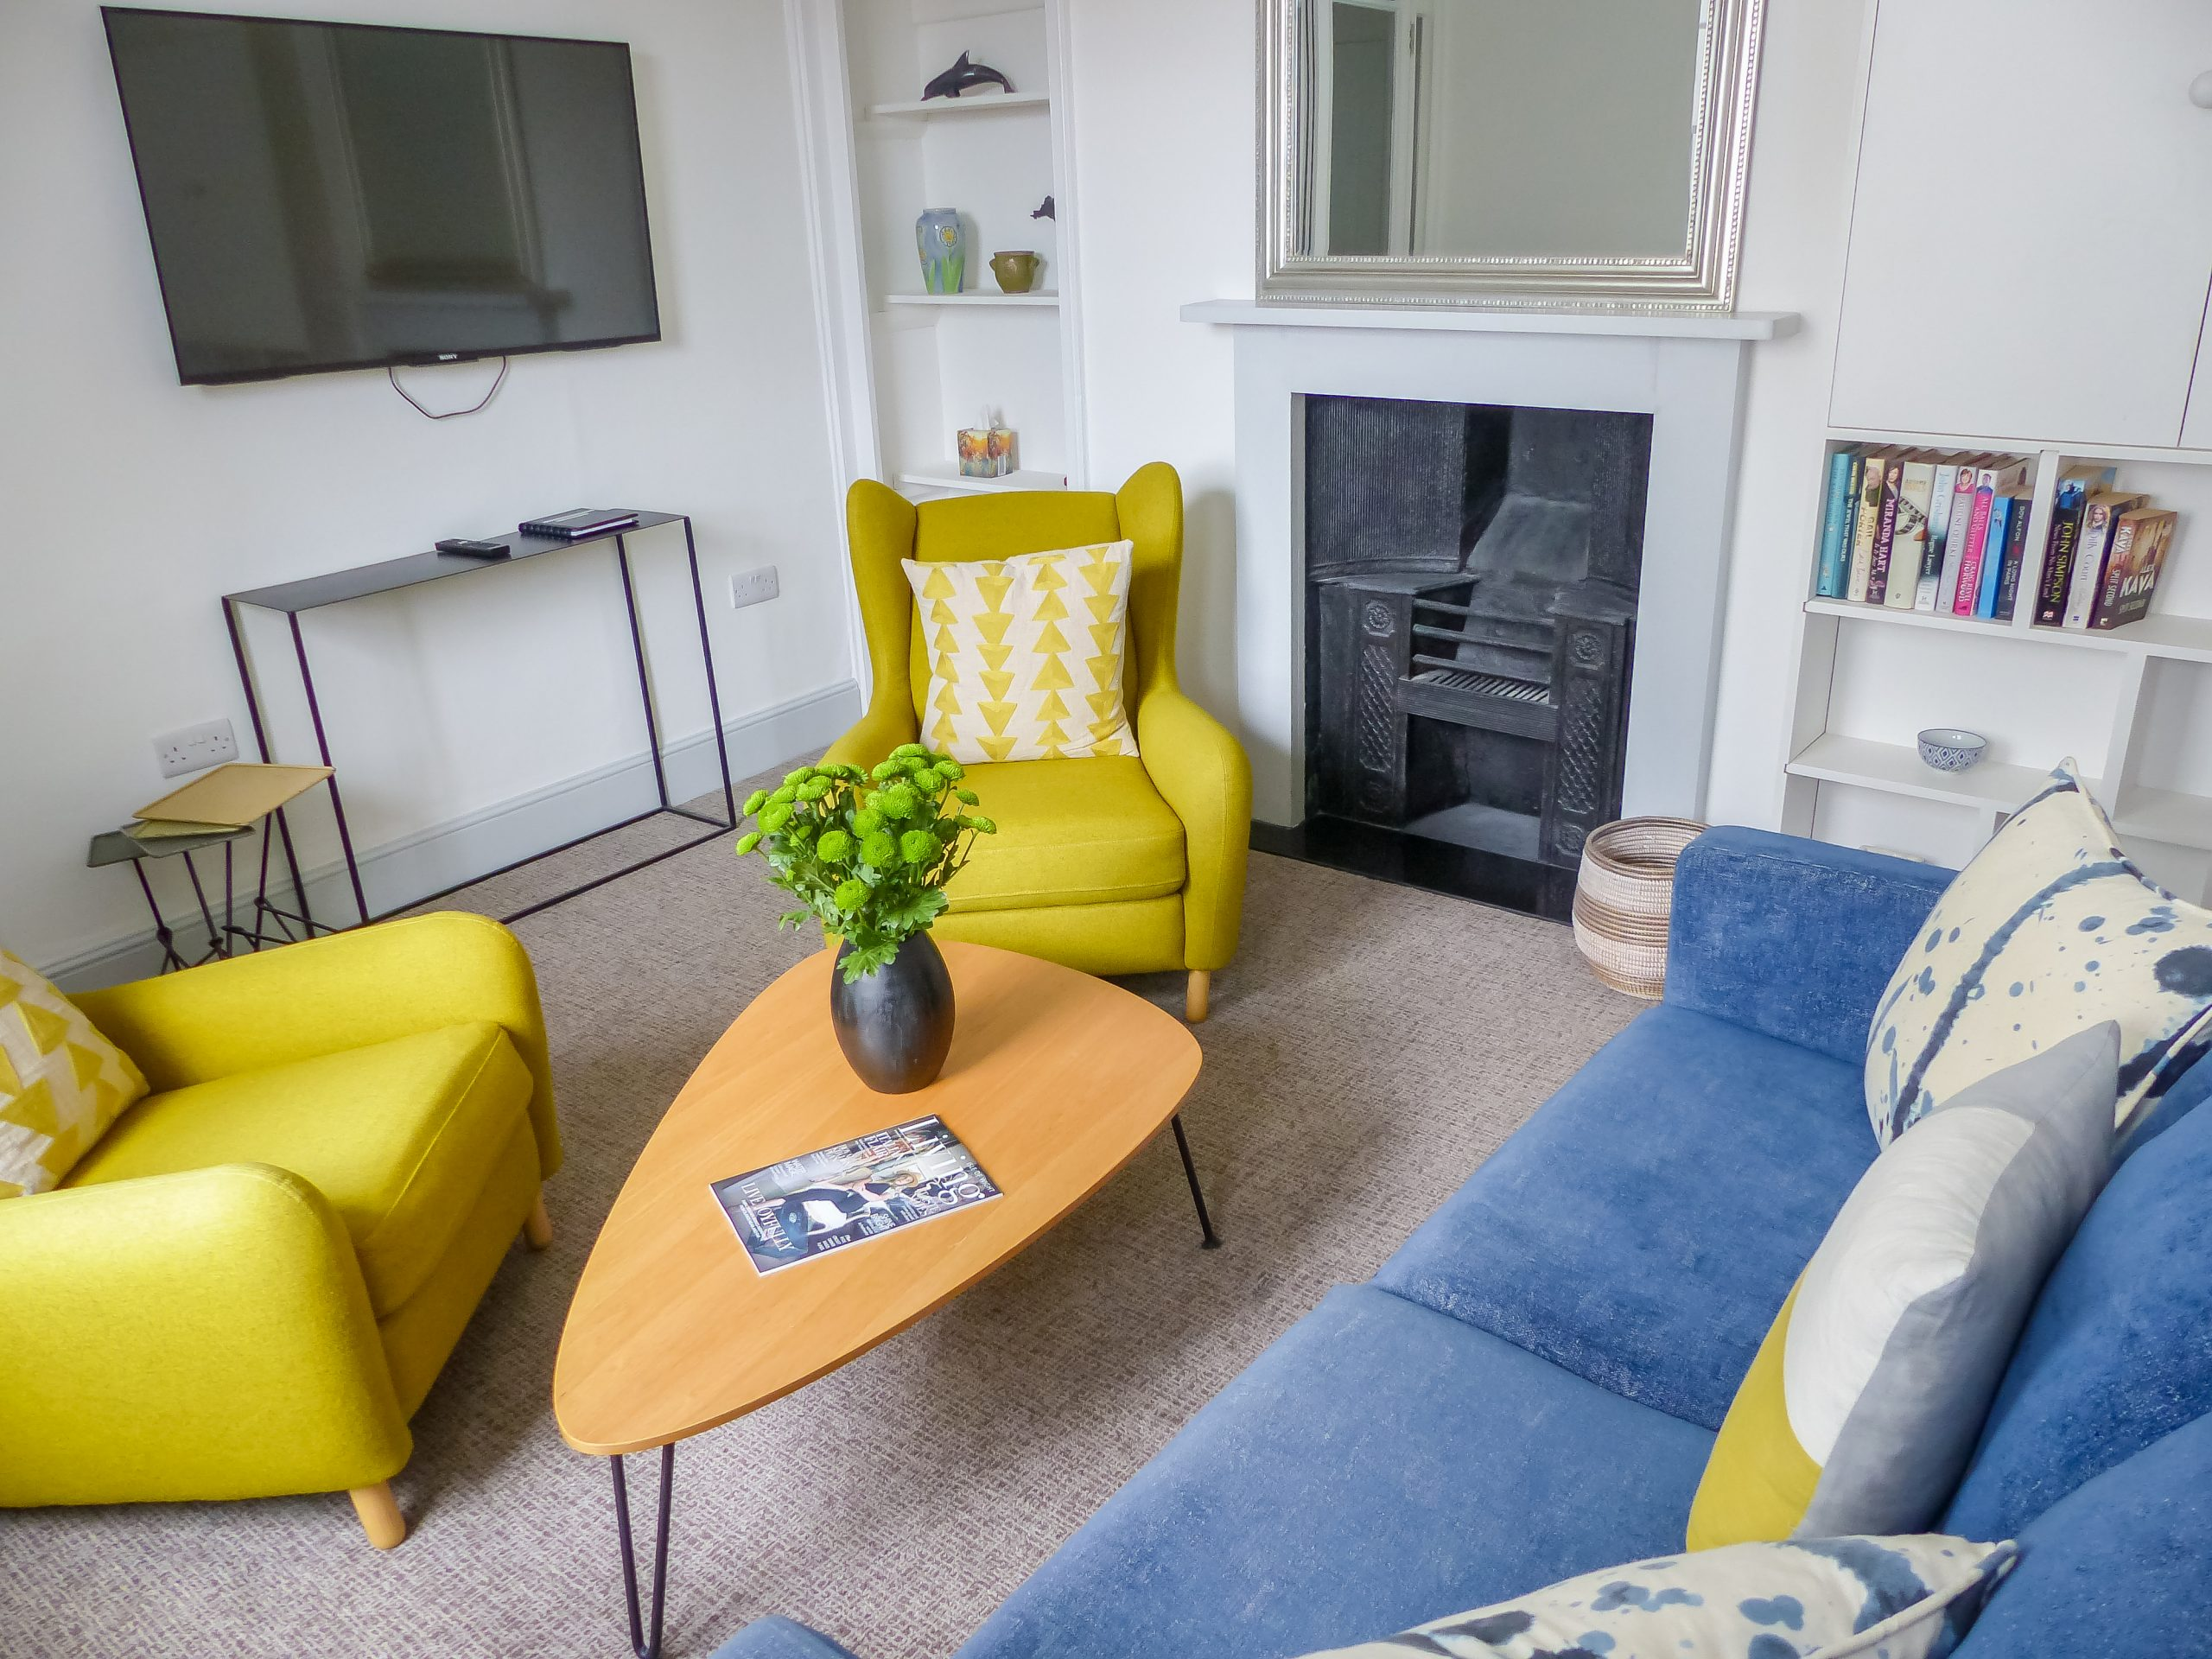 Photo of the living area, two yellow mustard arm chairs and a dark blue sofa surrounding a triangular shaped table with a vase and flowers on top.